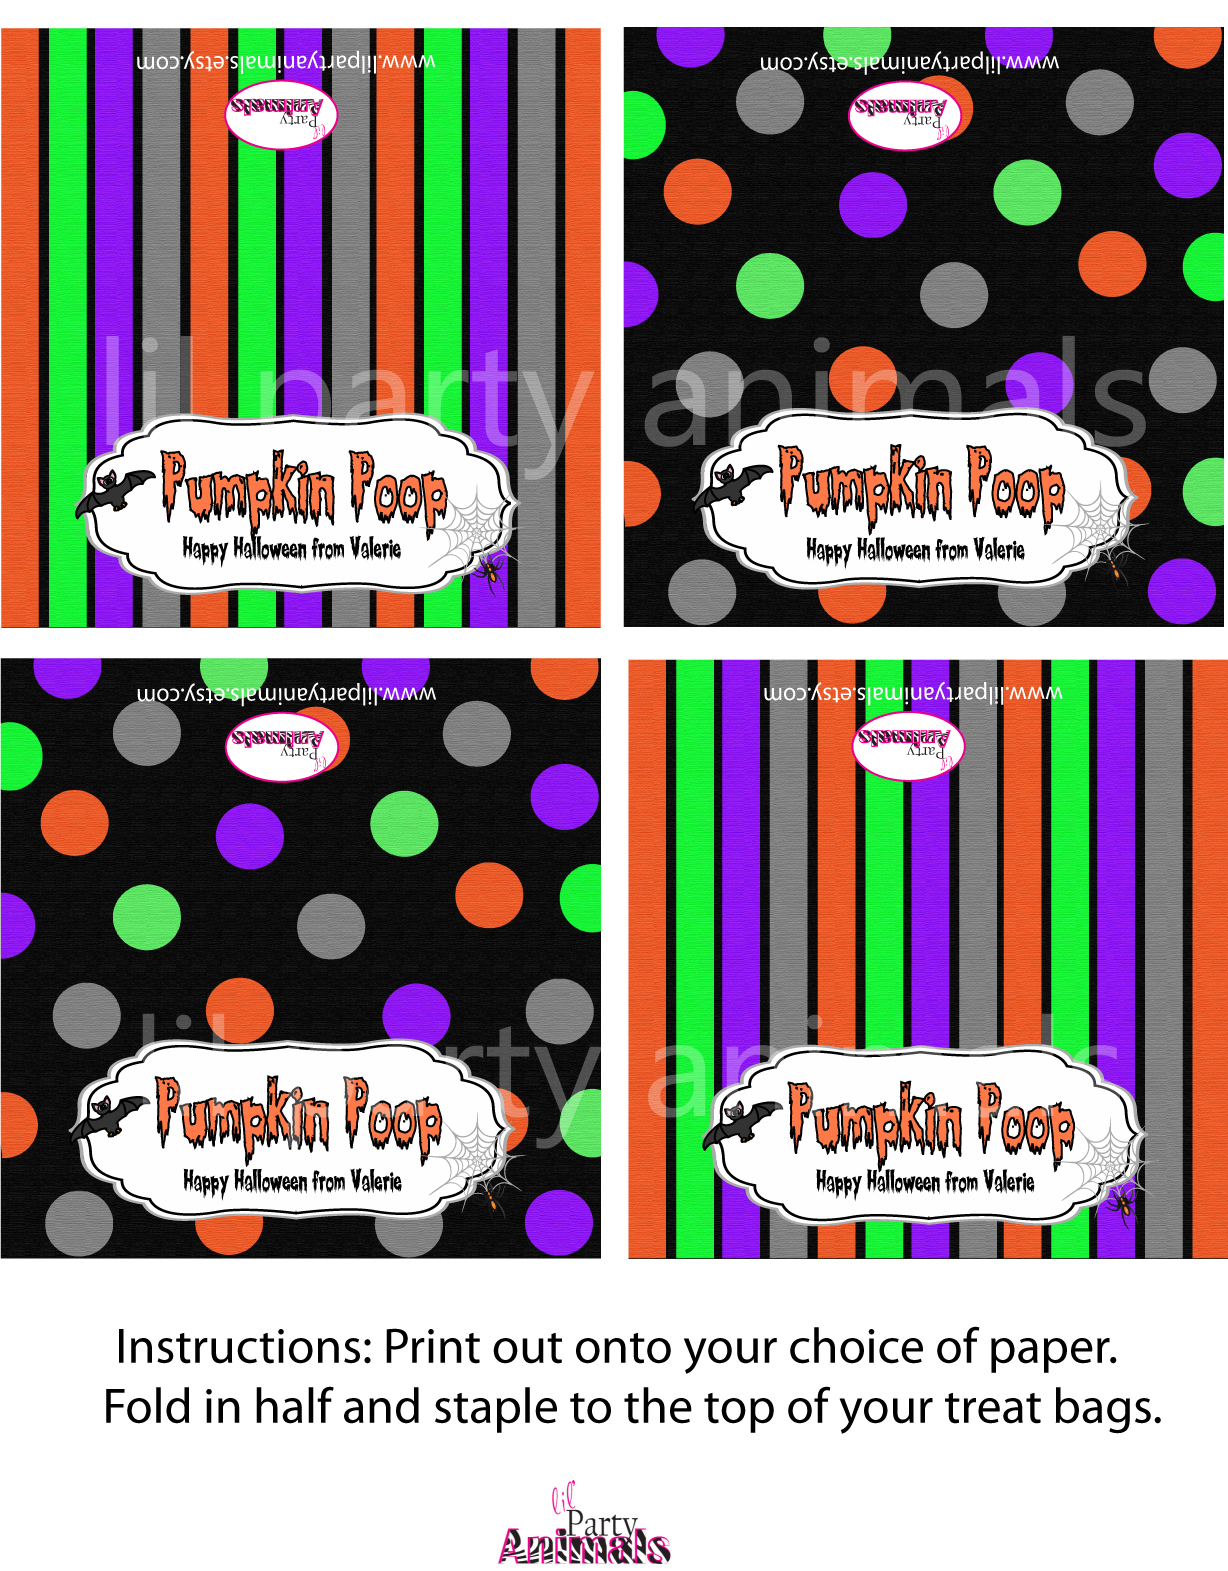 Lil Party Animals: Halloween treat toppers